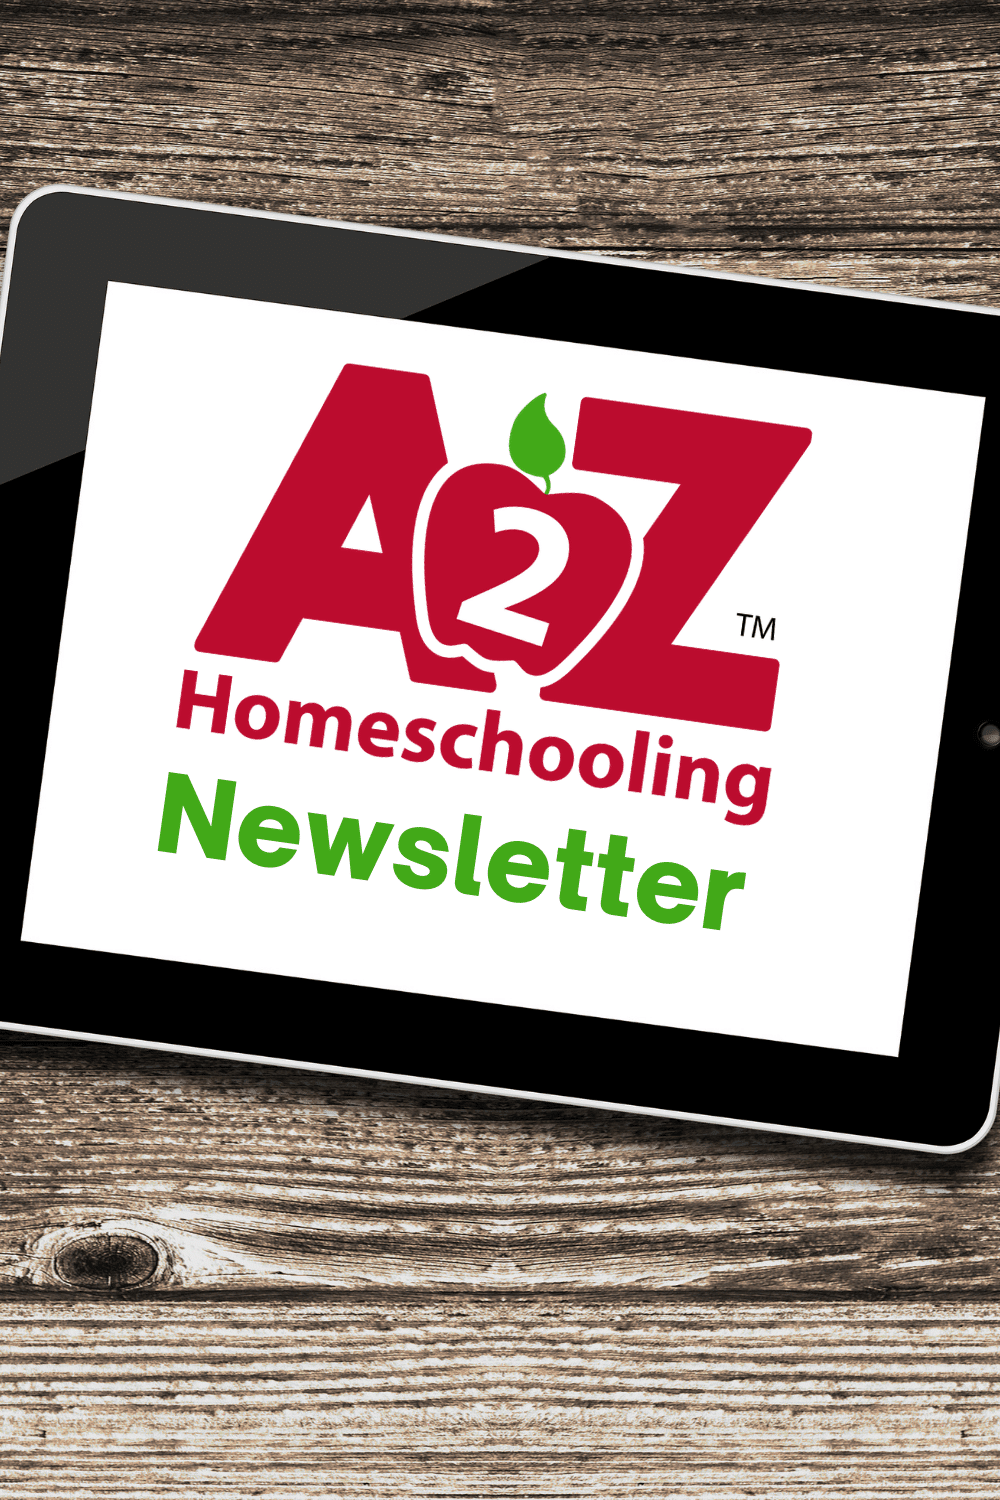 Free Scripts For Kids Acting Plays More A2z Homeschooling